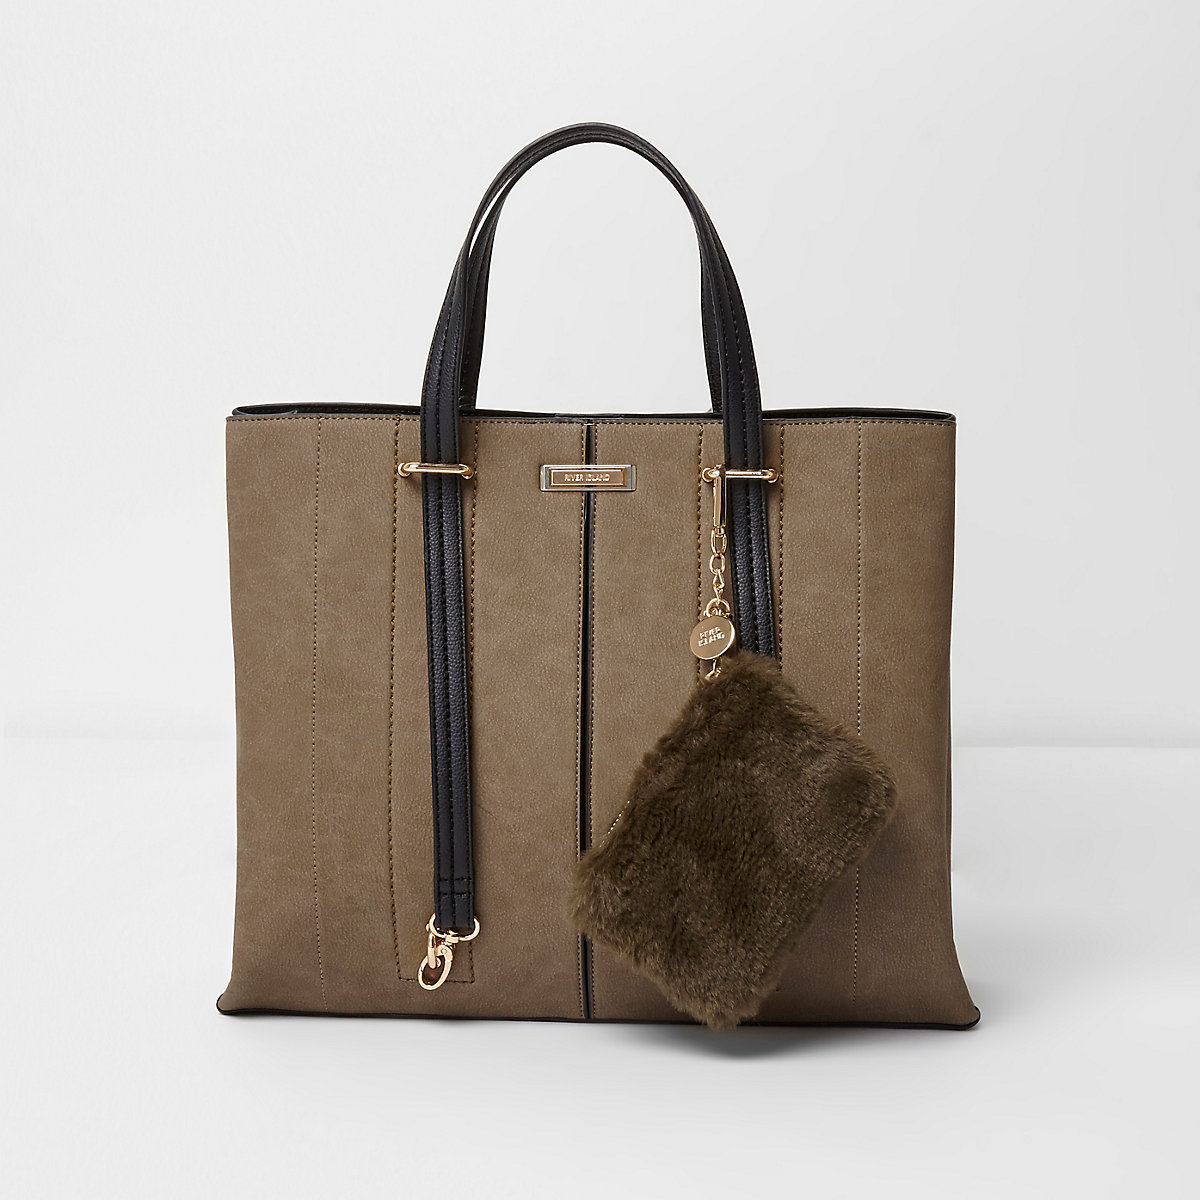 Khaki long handle pouchette tote bag